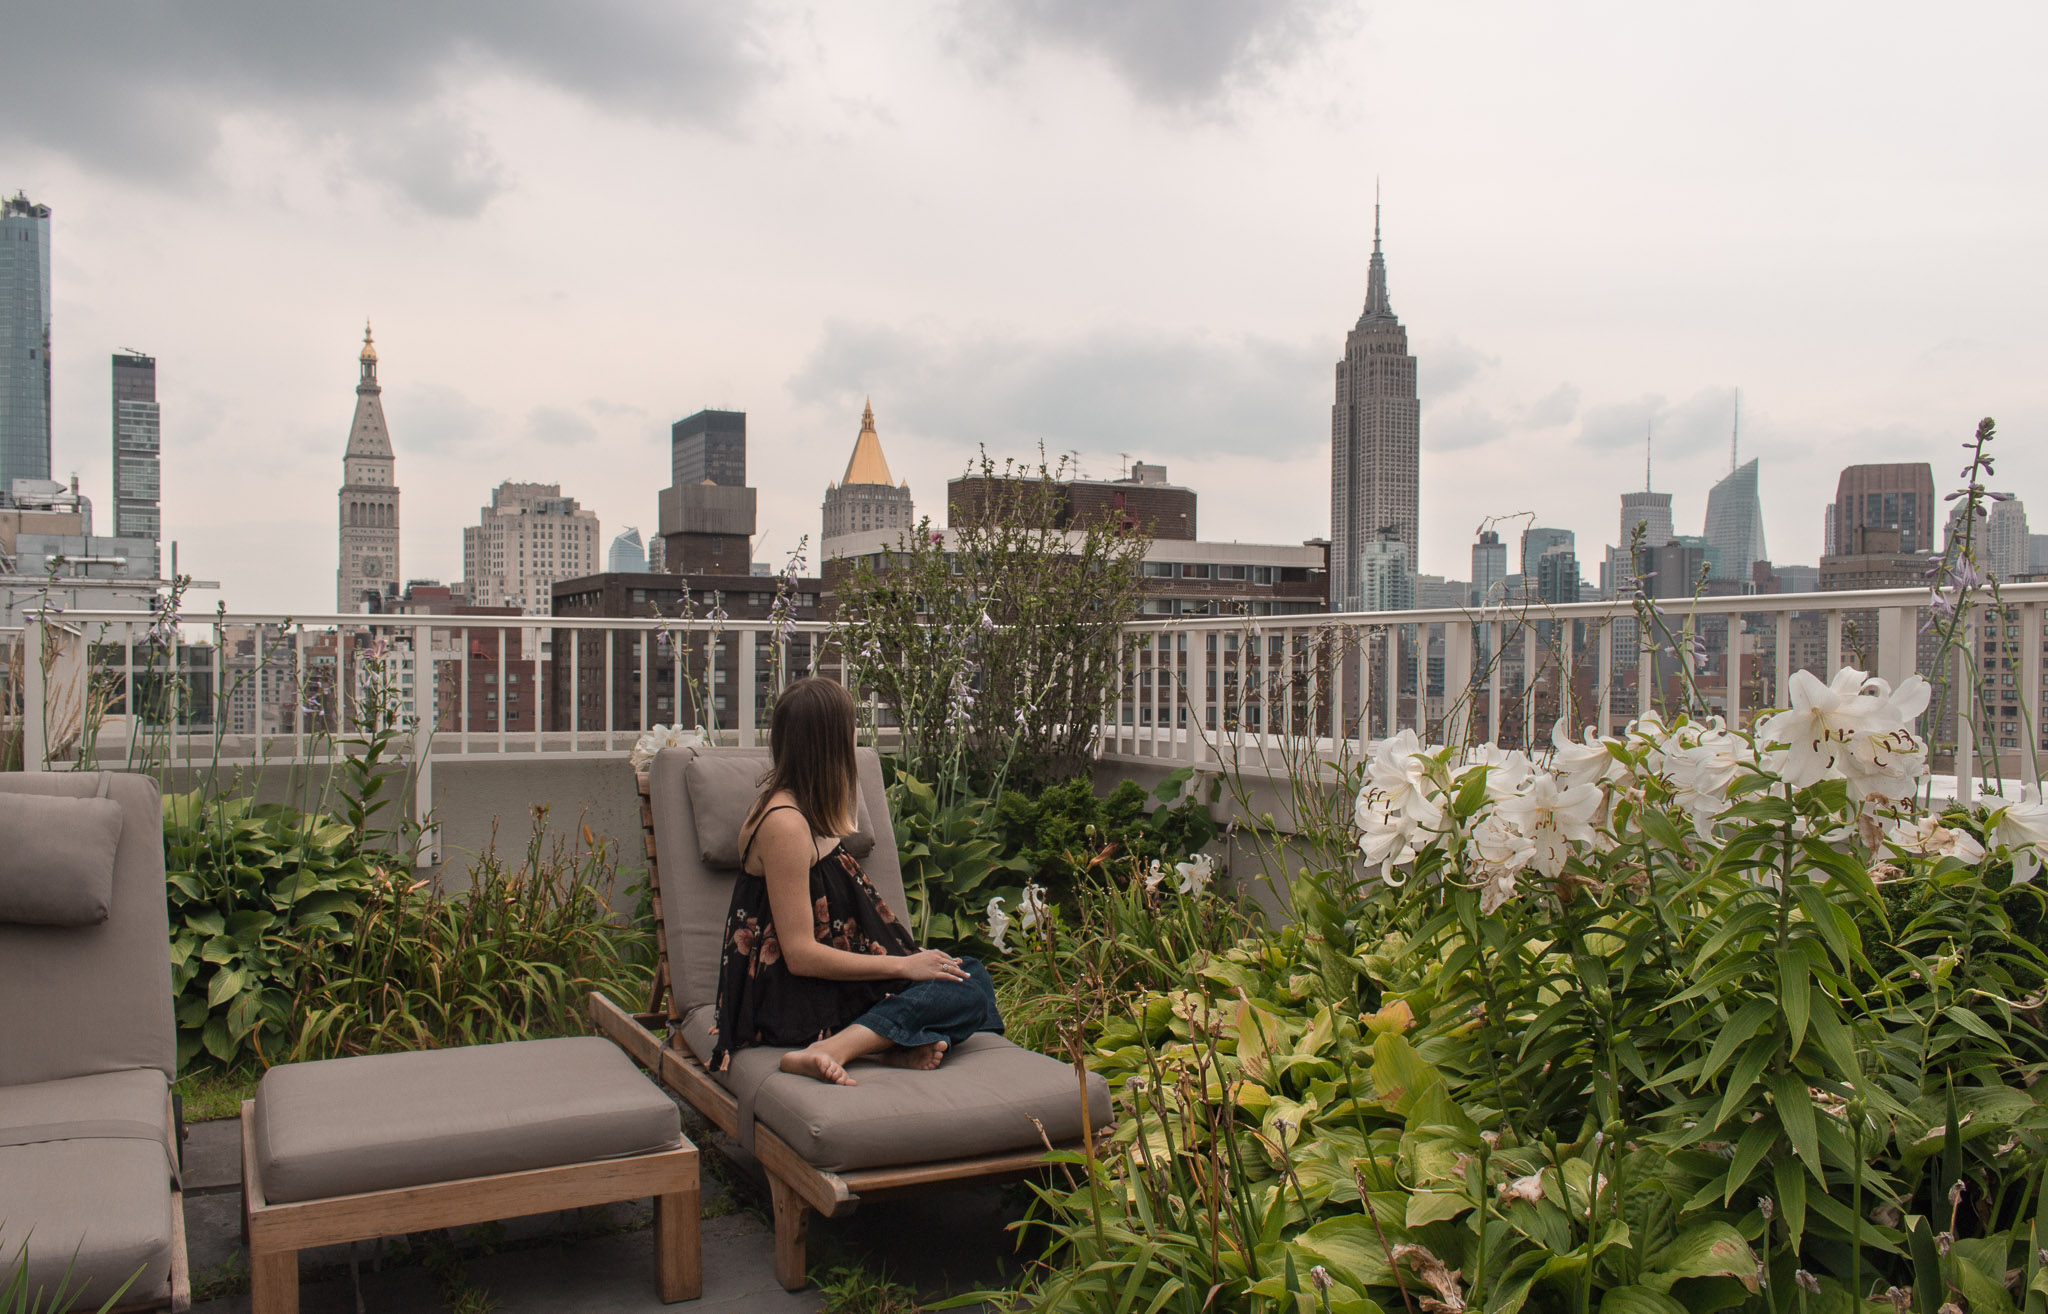 Rooftop views in New York City.